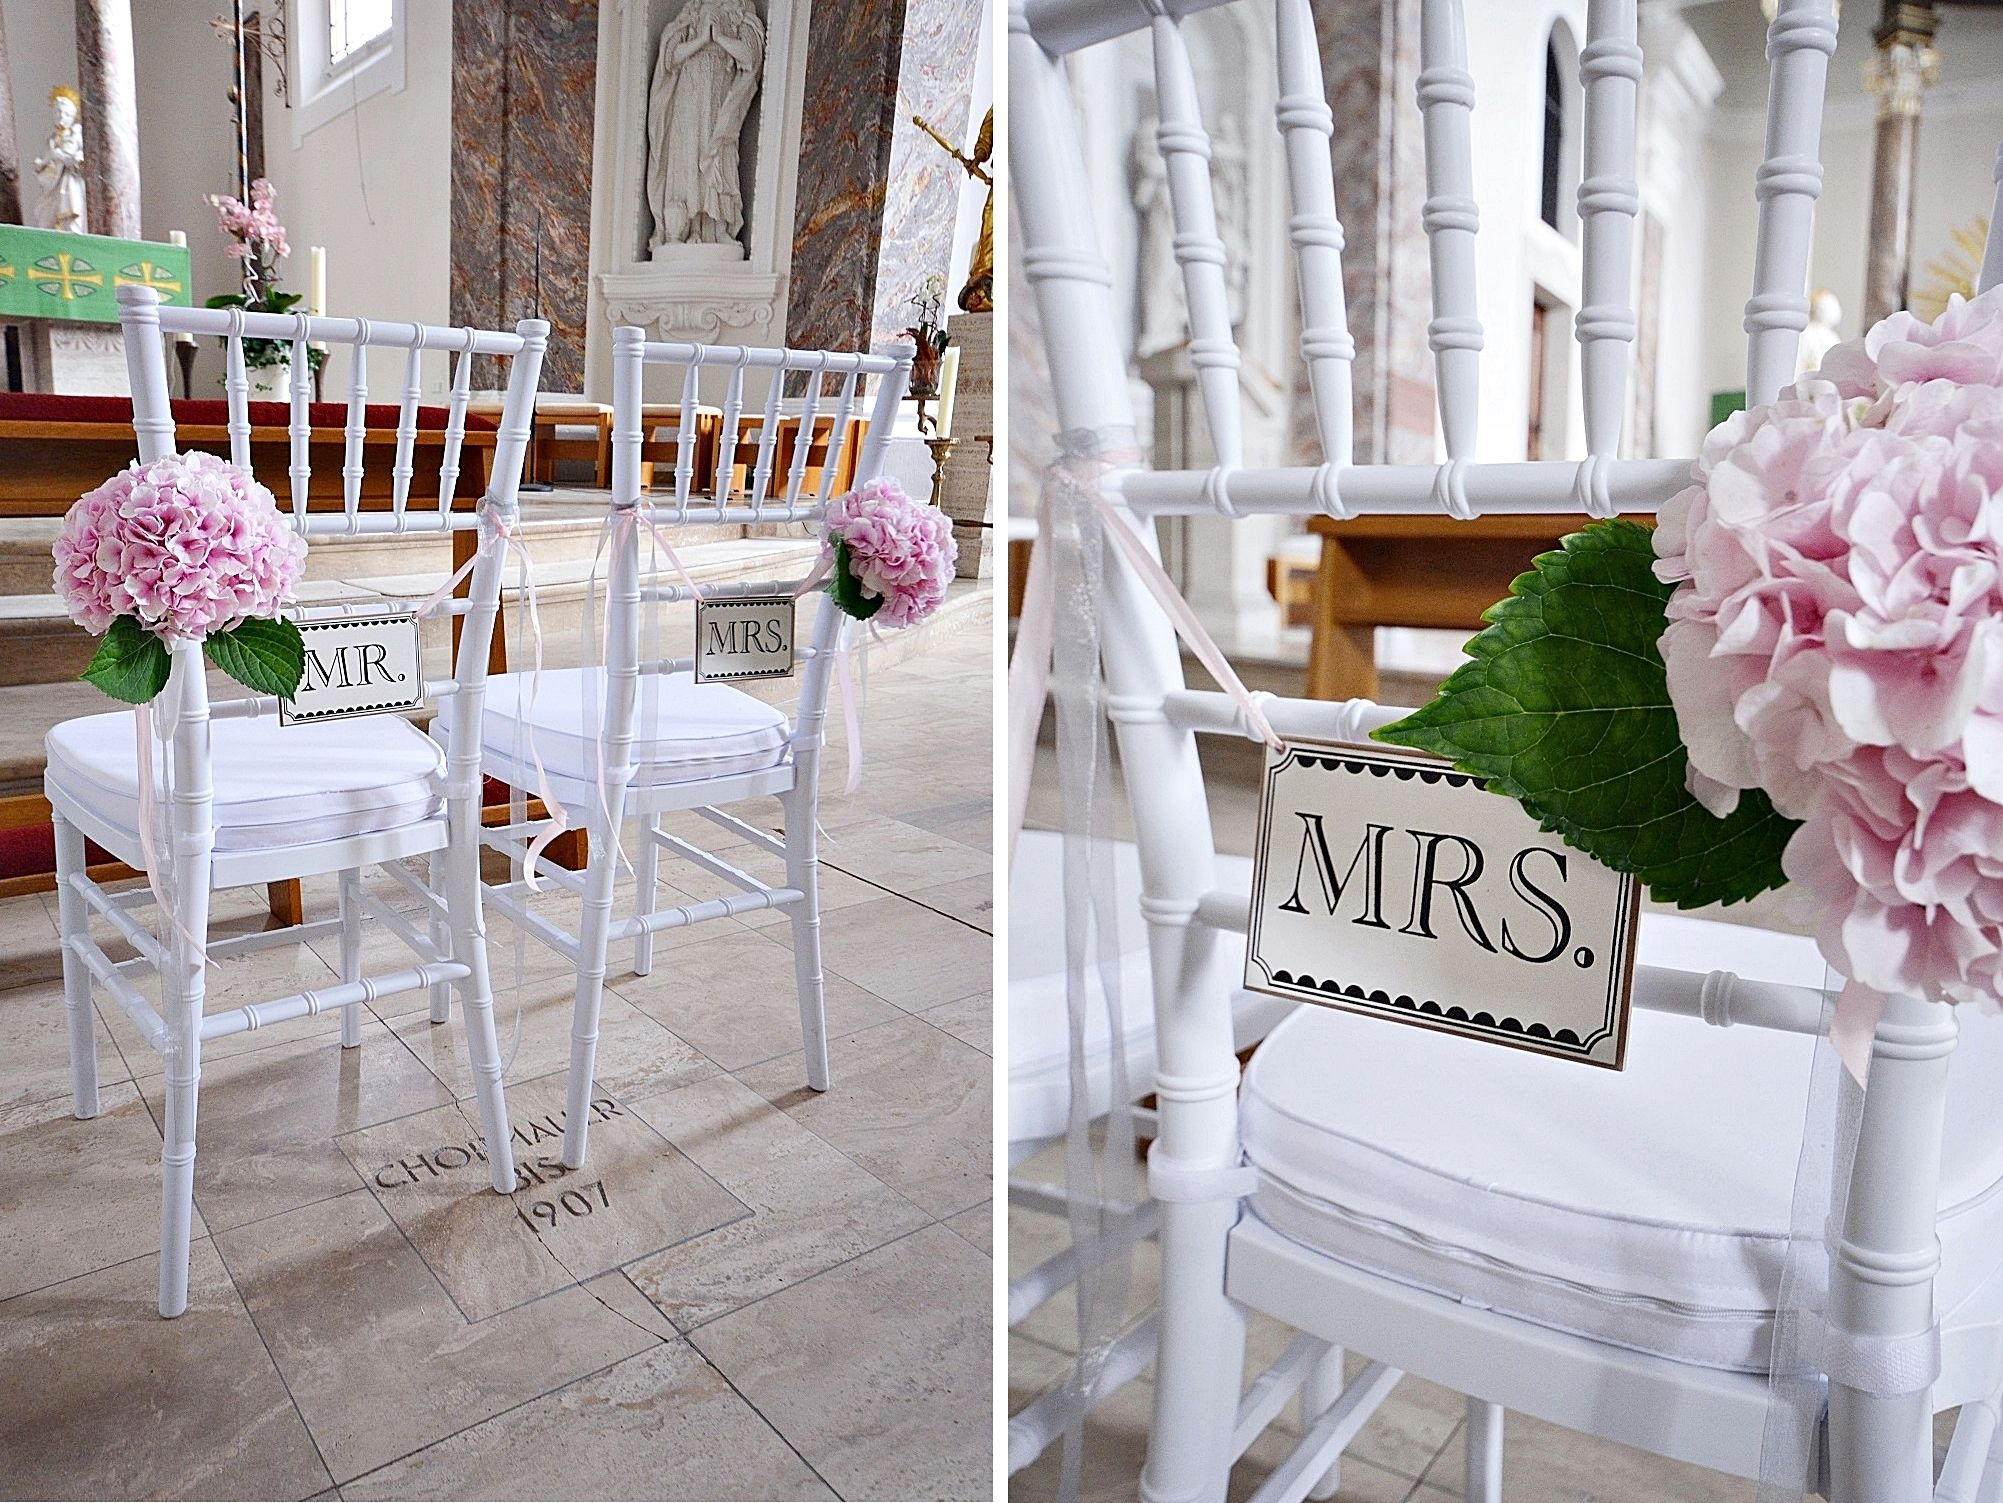 chiavari chair hortensien kirche deko tischdeko hochzeit pinterest hortensien tischdeko. Black Bedroom Furniture Sets. Home Design Ideas